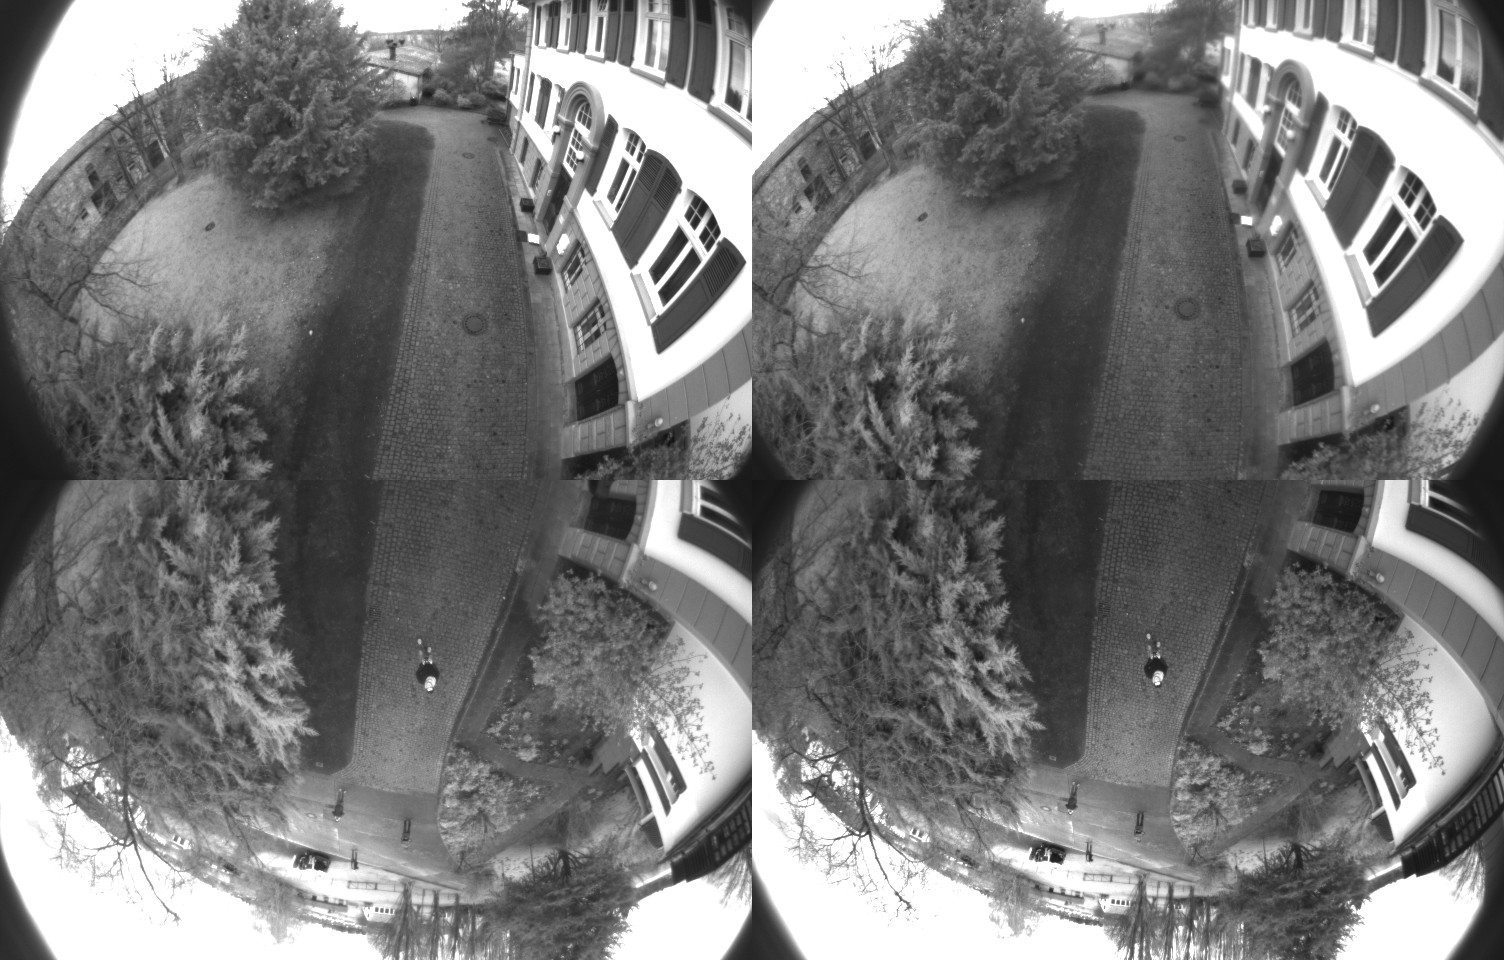 Four simultaneously triggered images of the fisheye cameras.